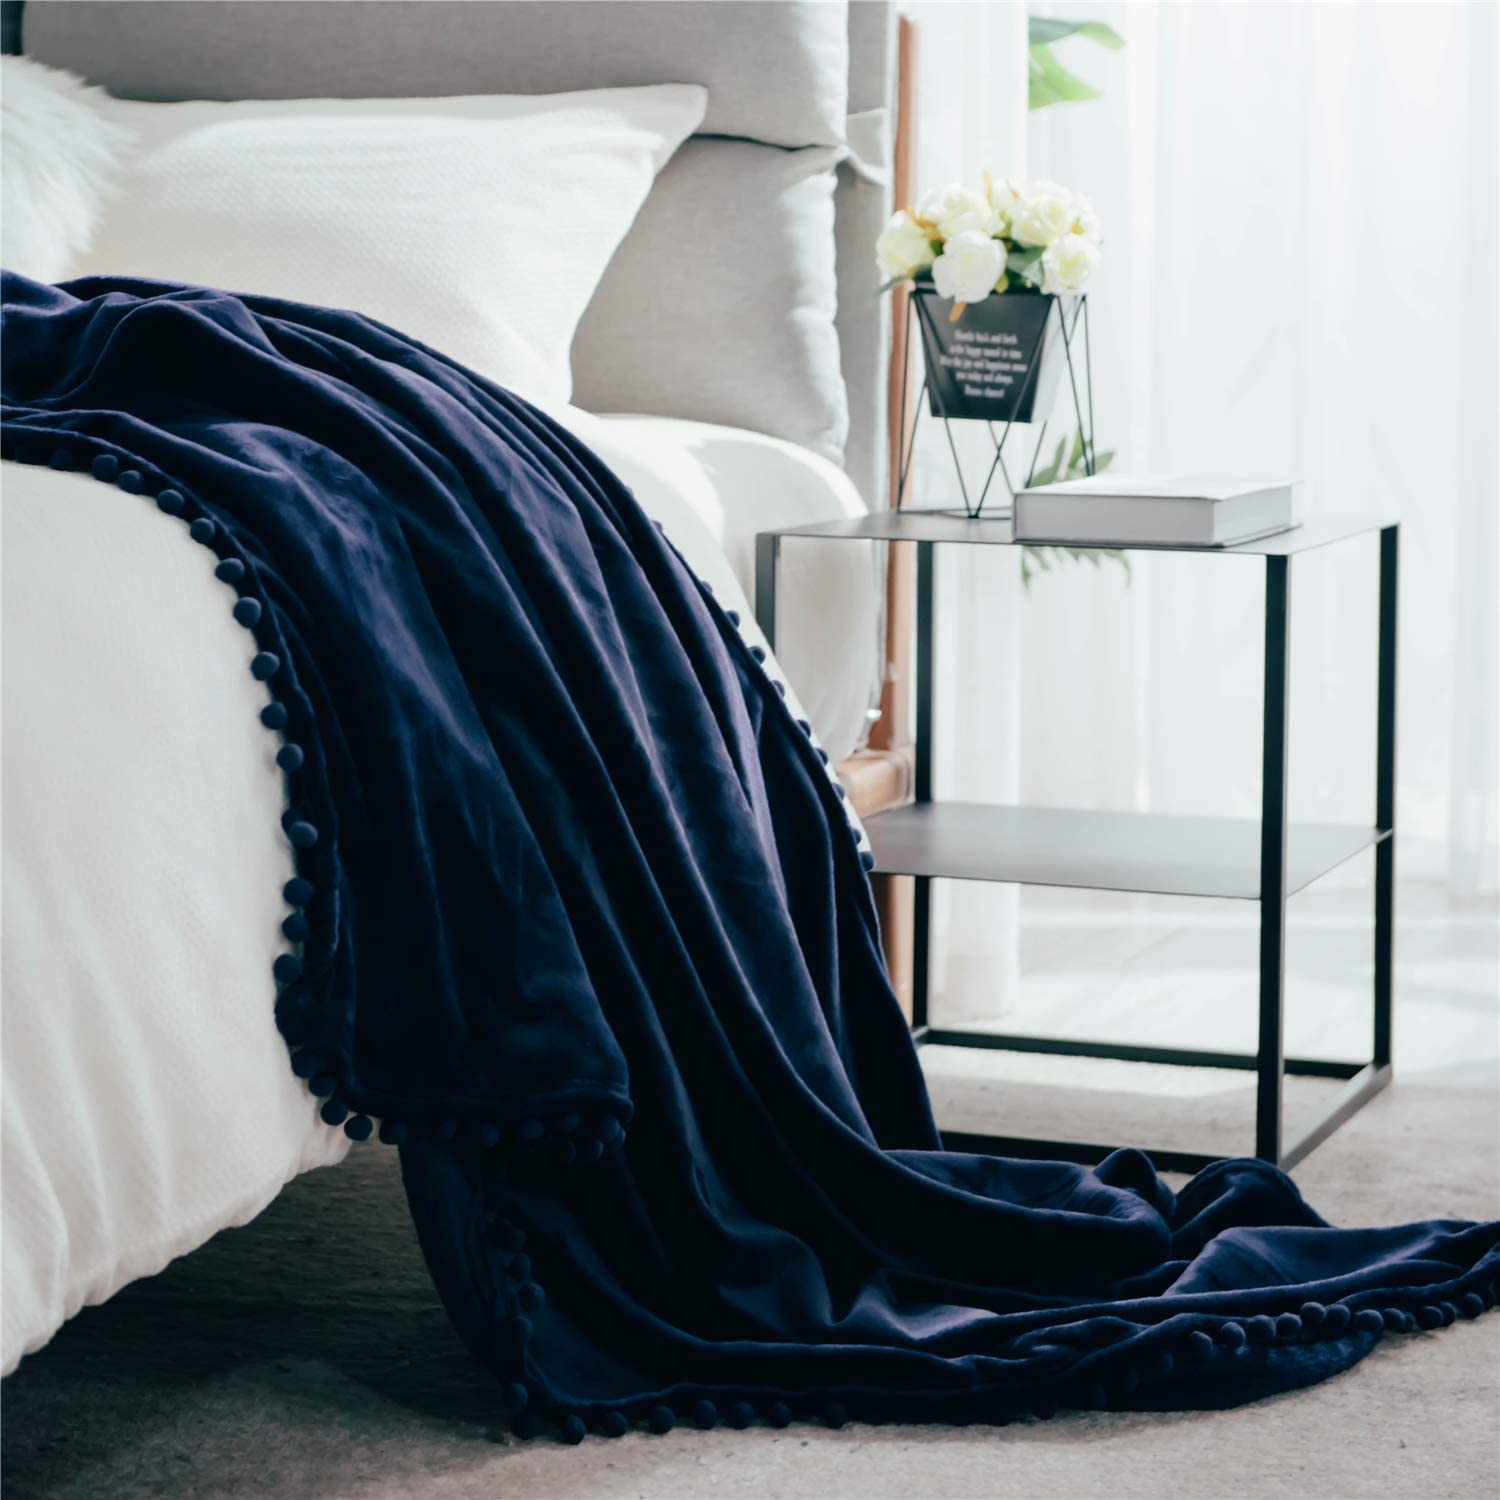 DEZENE Fleece Blanket with Pom-poms Navy: Decorative Soft Fuzzy Fluffy Plush Flannel Throw Blanket for Couch Sofa Bed Nap 60 x 80 Inch Twin